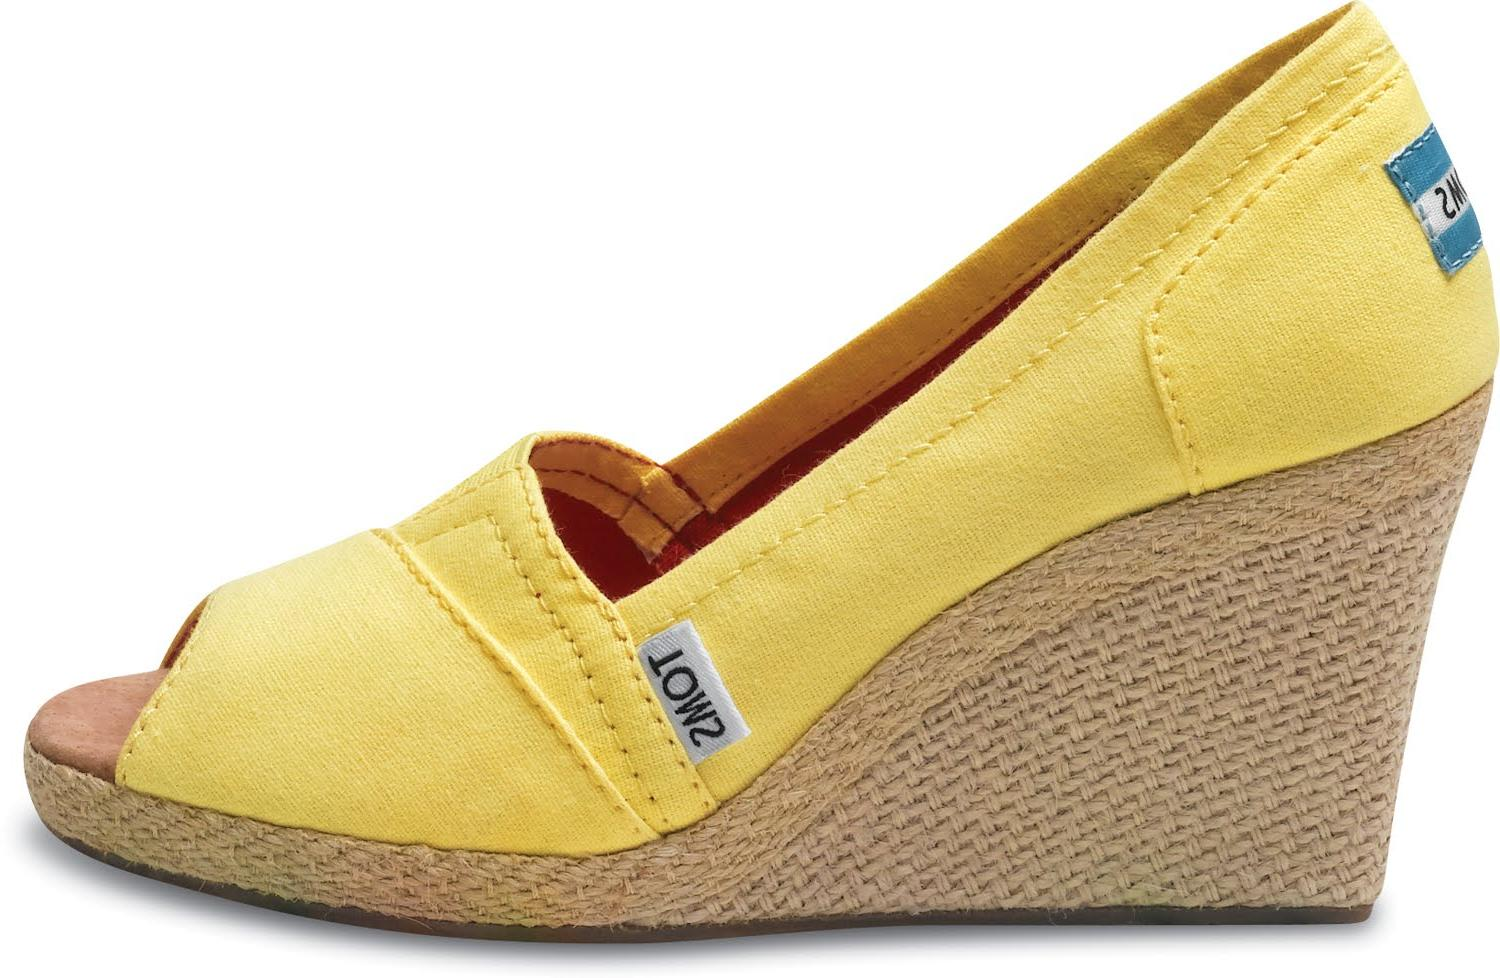 TOMS wedges for your wedding!